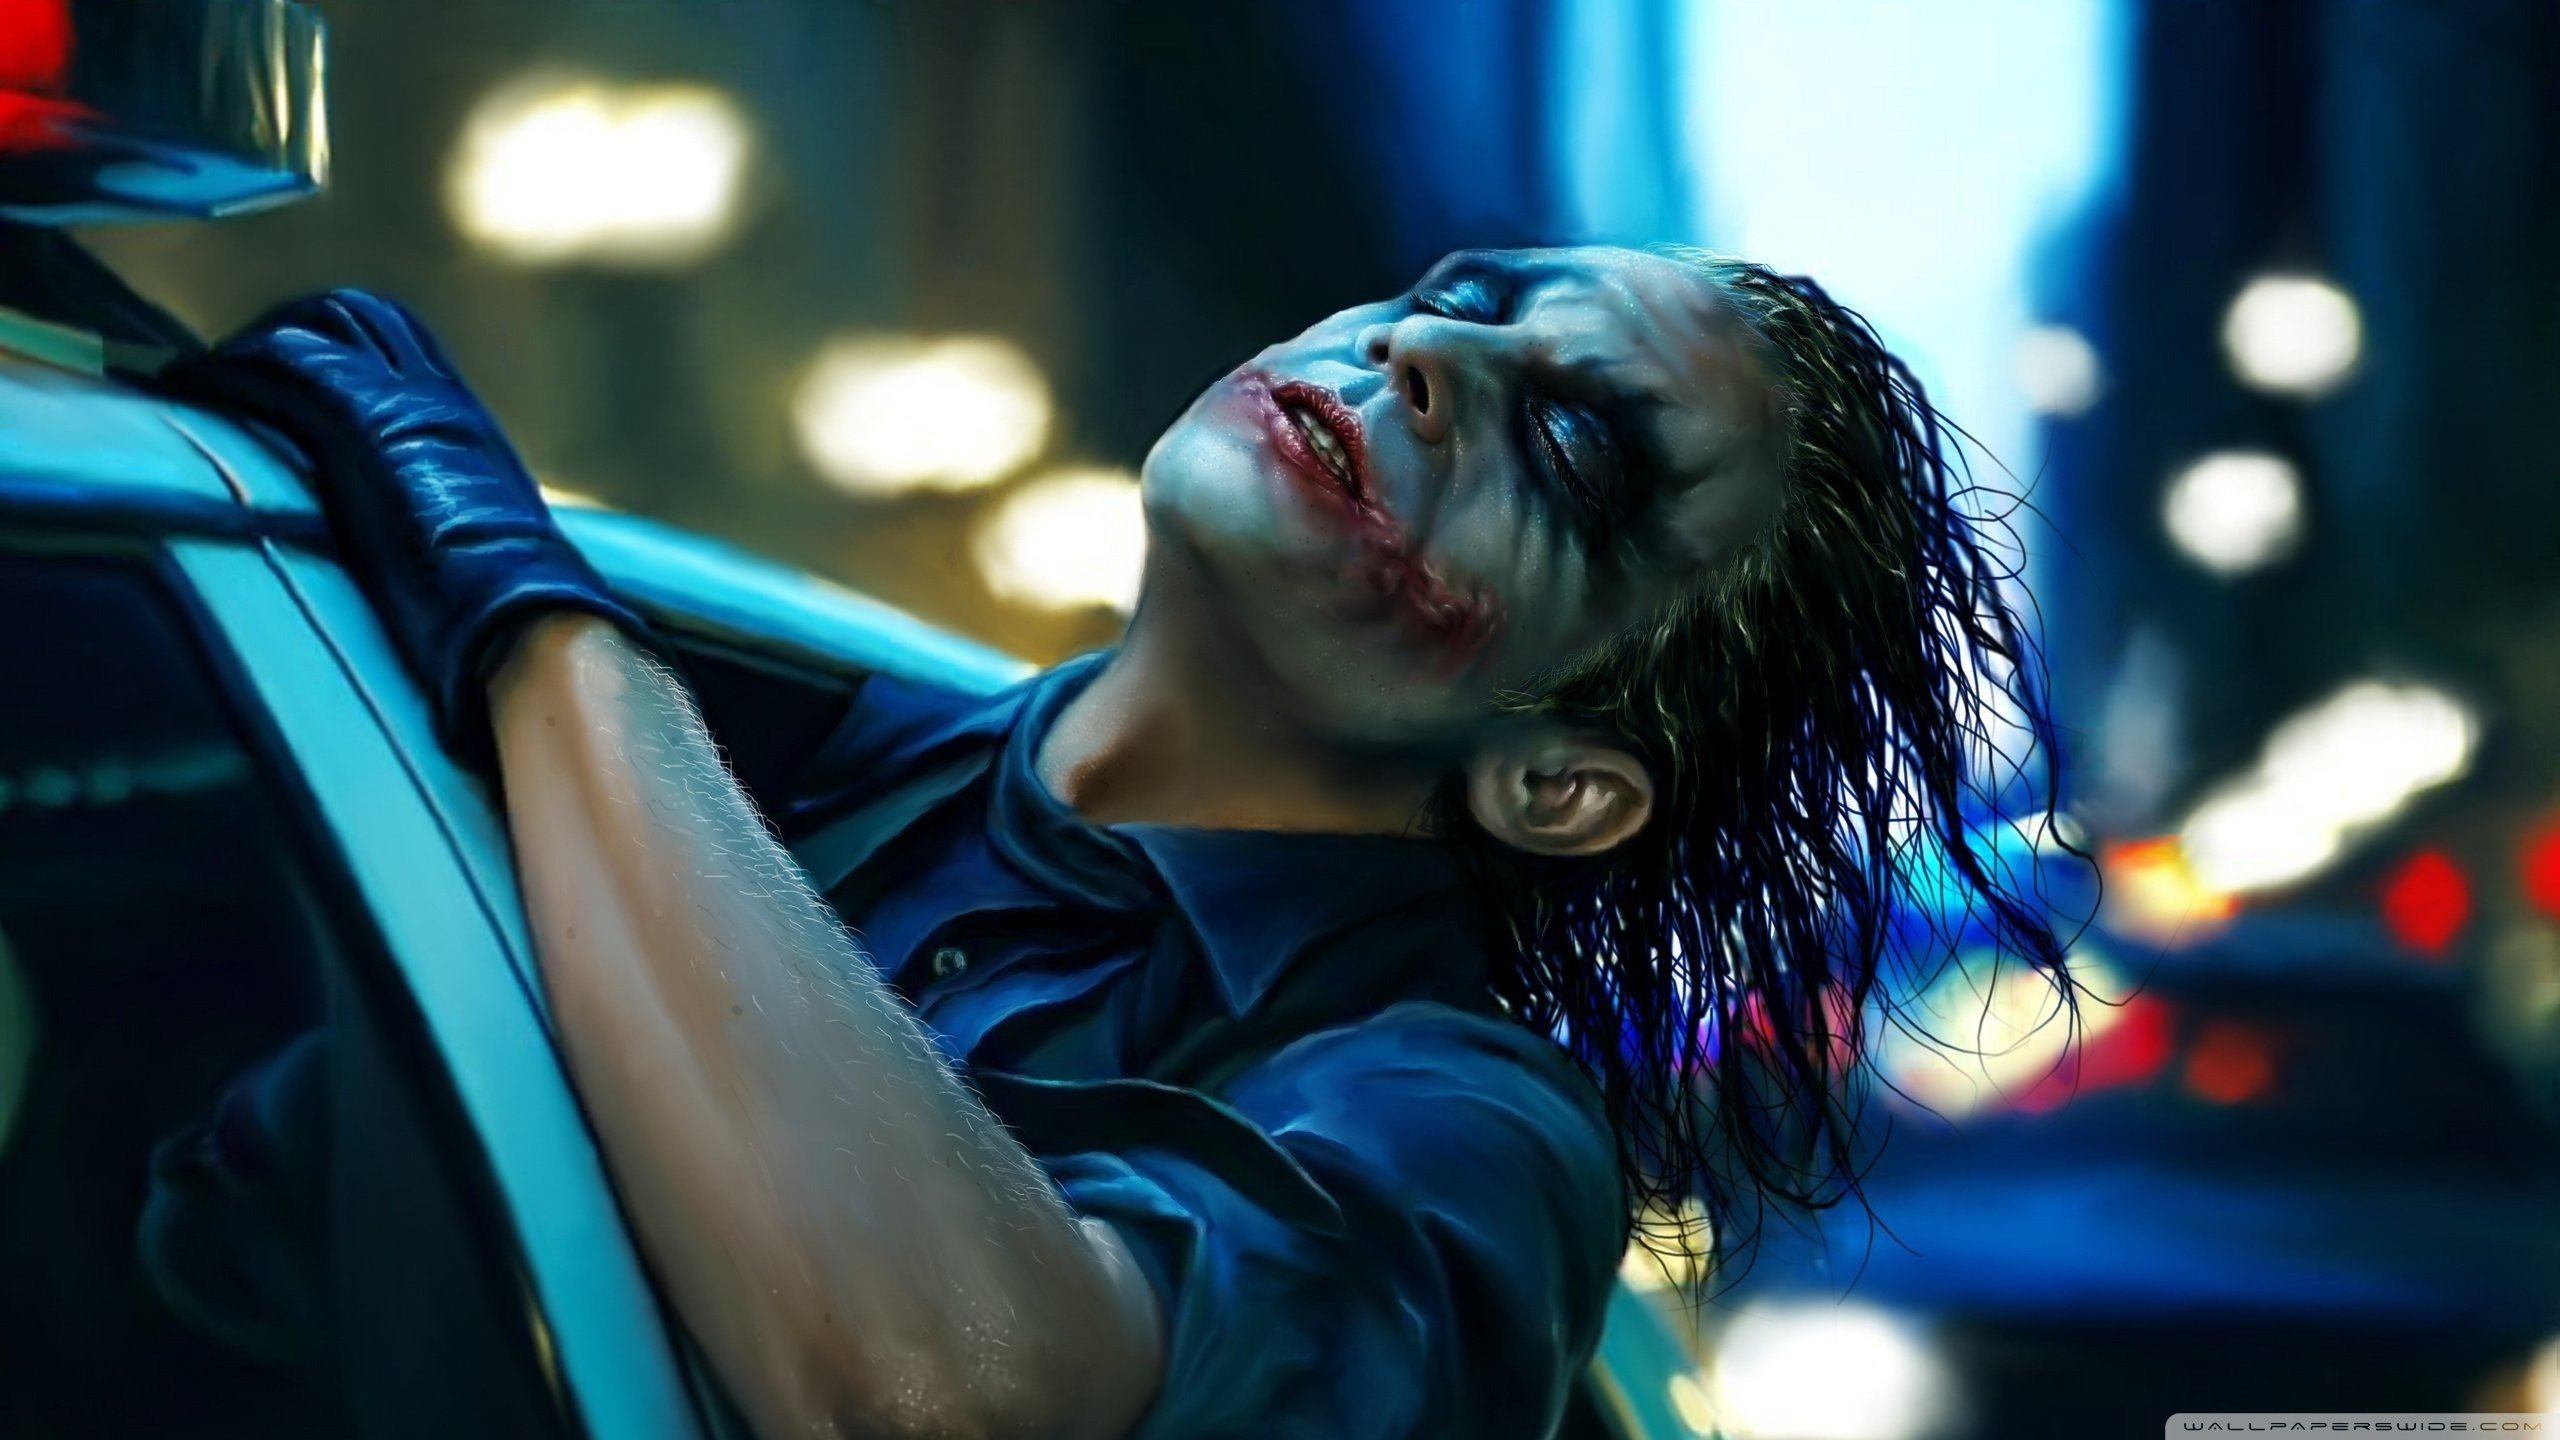 the_joker_painting-wallpaper-2560x1440.jpg